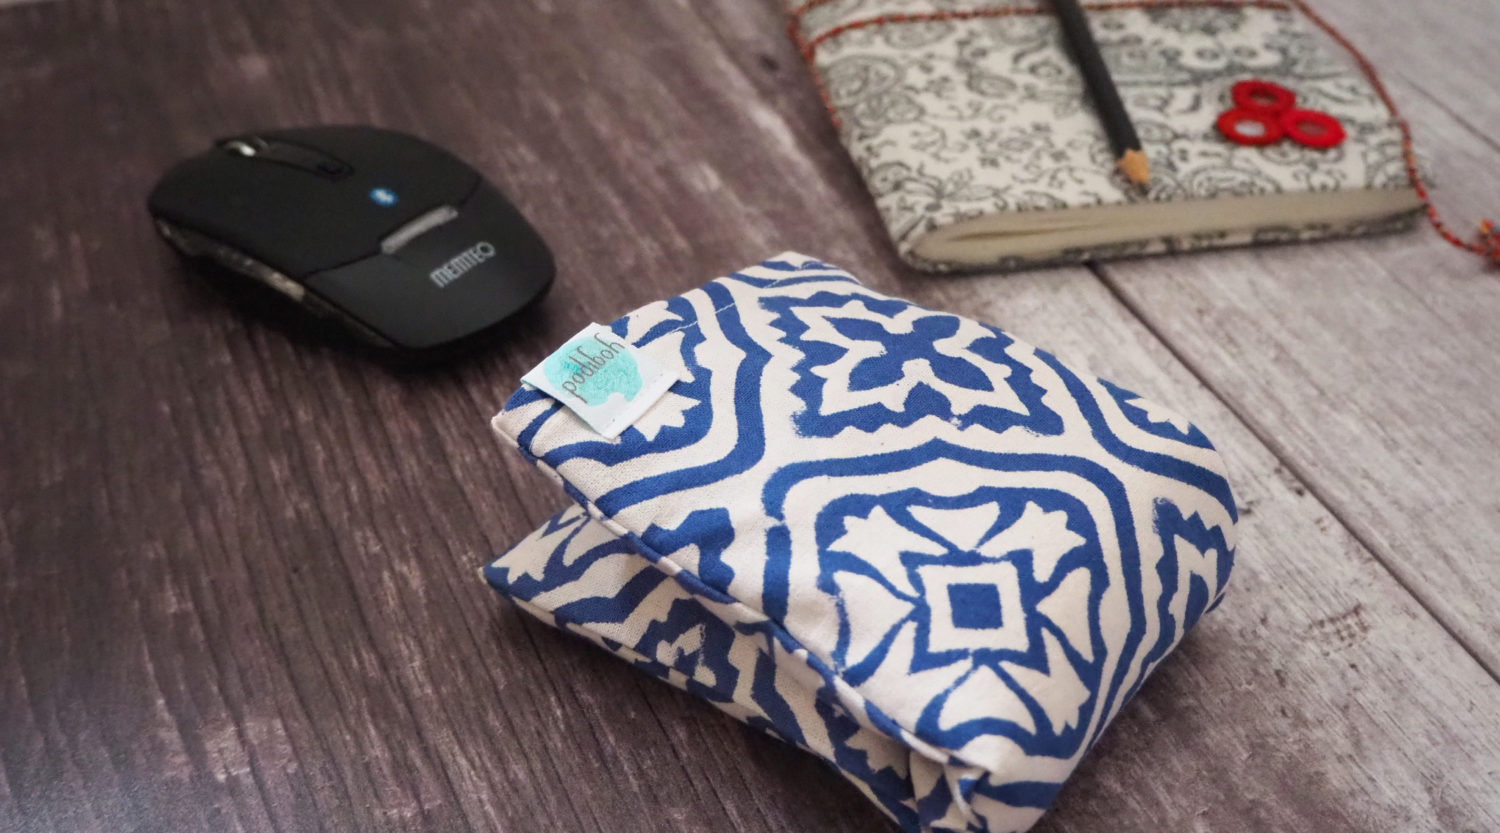 eye pillow being used as wrist support